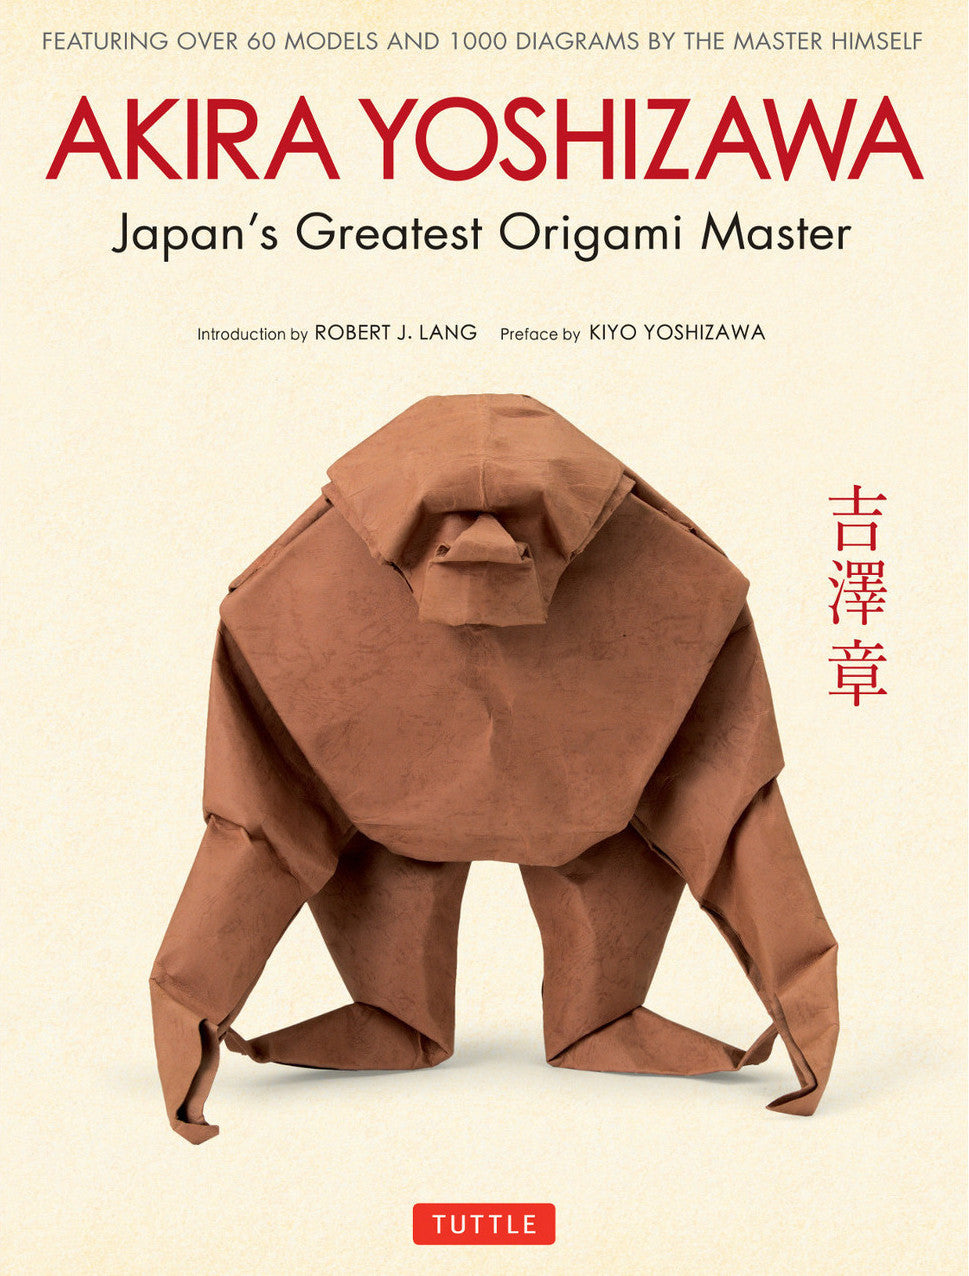 20th Tanteidan Convention Model Book Paper Tree The Origami Store Peacock Diagram Akira Yoshizawa Japans Greatest Master